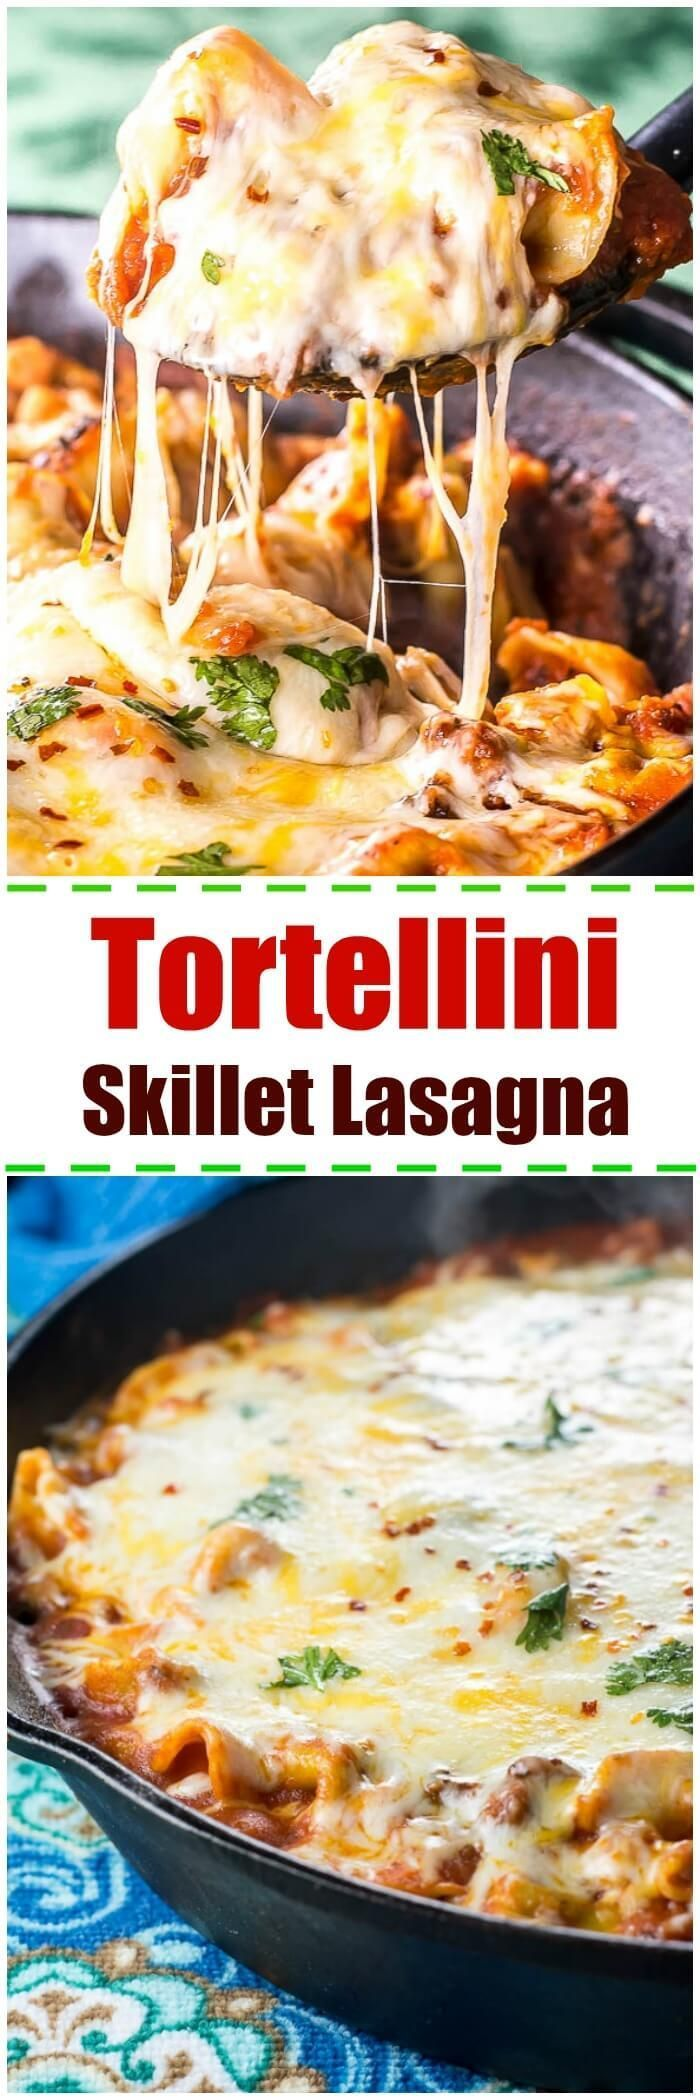 Cheesy Tortellini Skillet Lasagna is perfect when you want lasagna but don't��